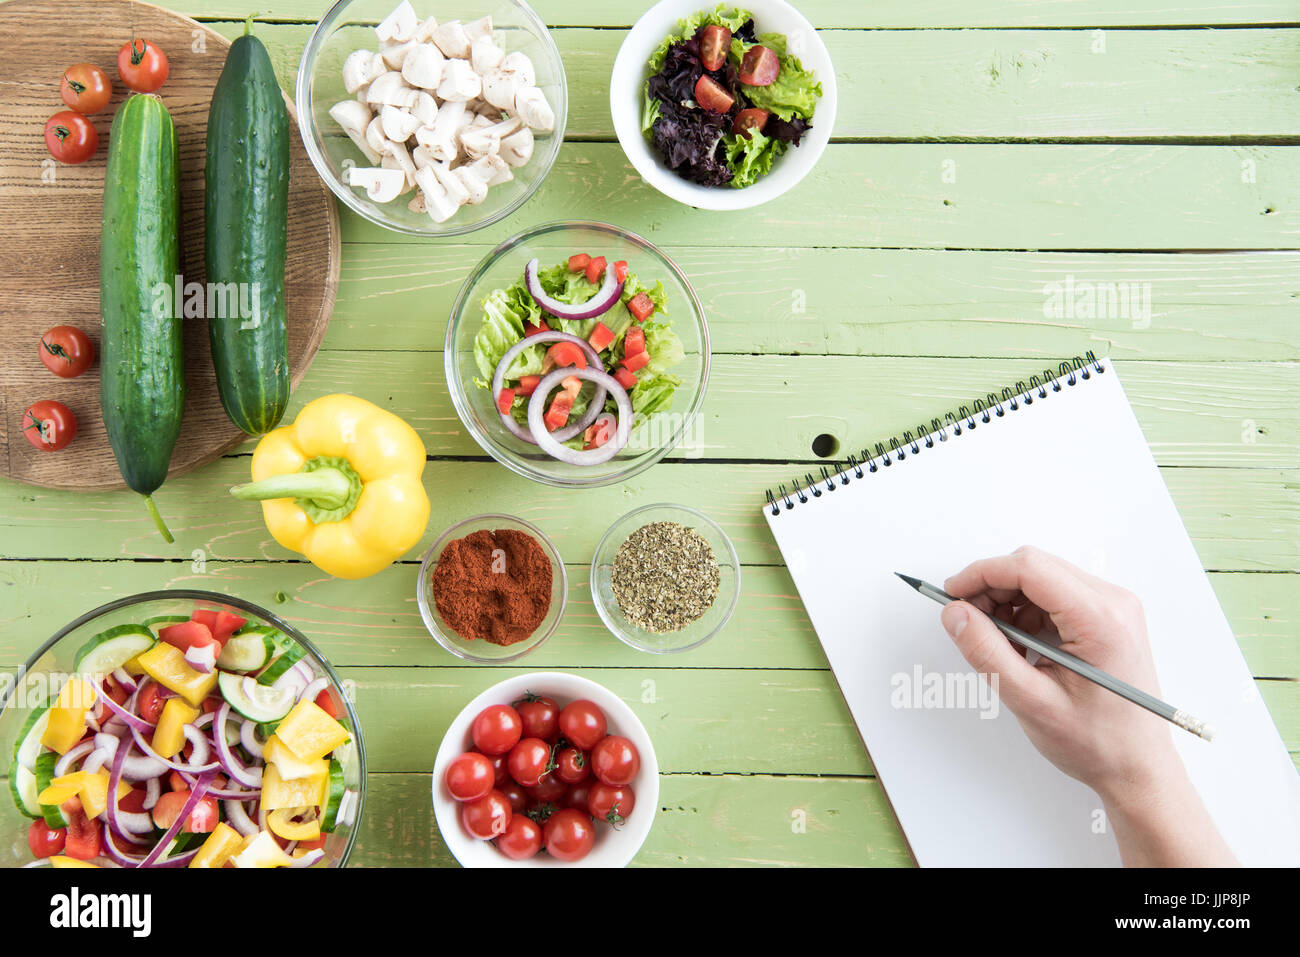 Close-up partial view of person holding pencil and writing recipe in cookbook while cooking - Stock Image